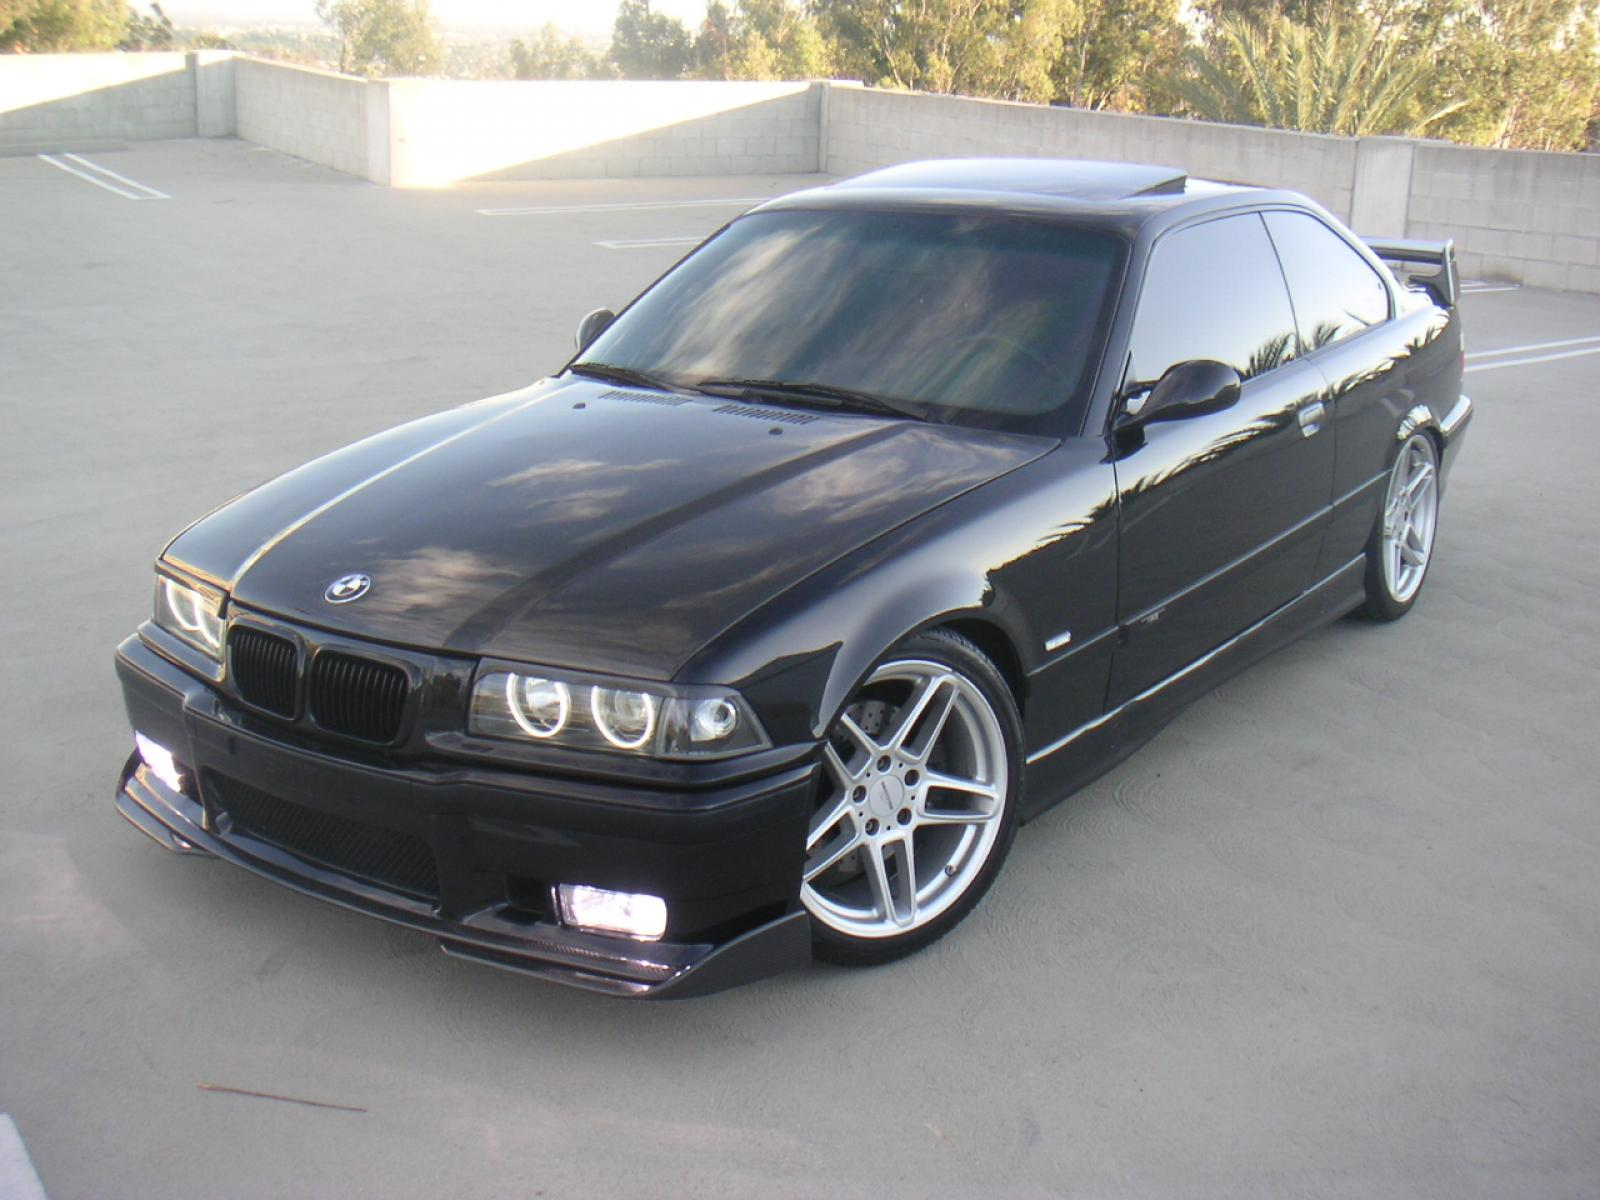 1997 Bmw M3 Information And Photos Zombiedrive 97 Jeep Ecm Wiring 800 1024 1280 1600 Origin